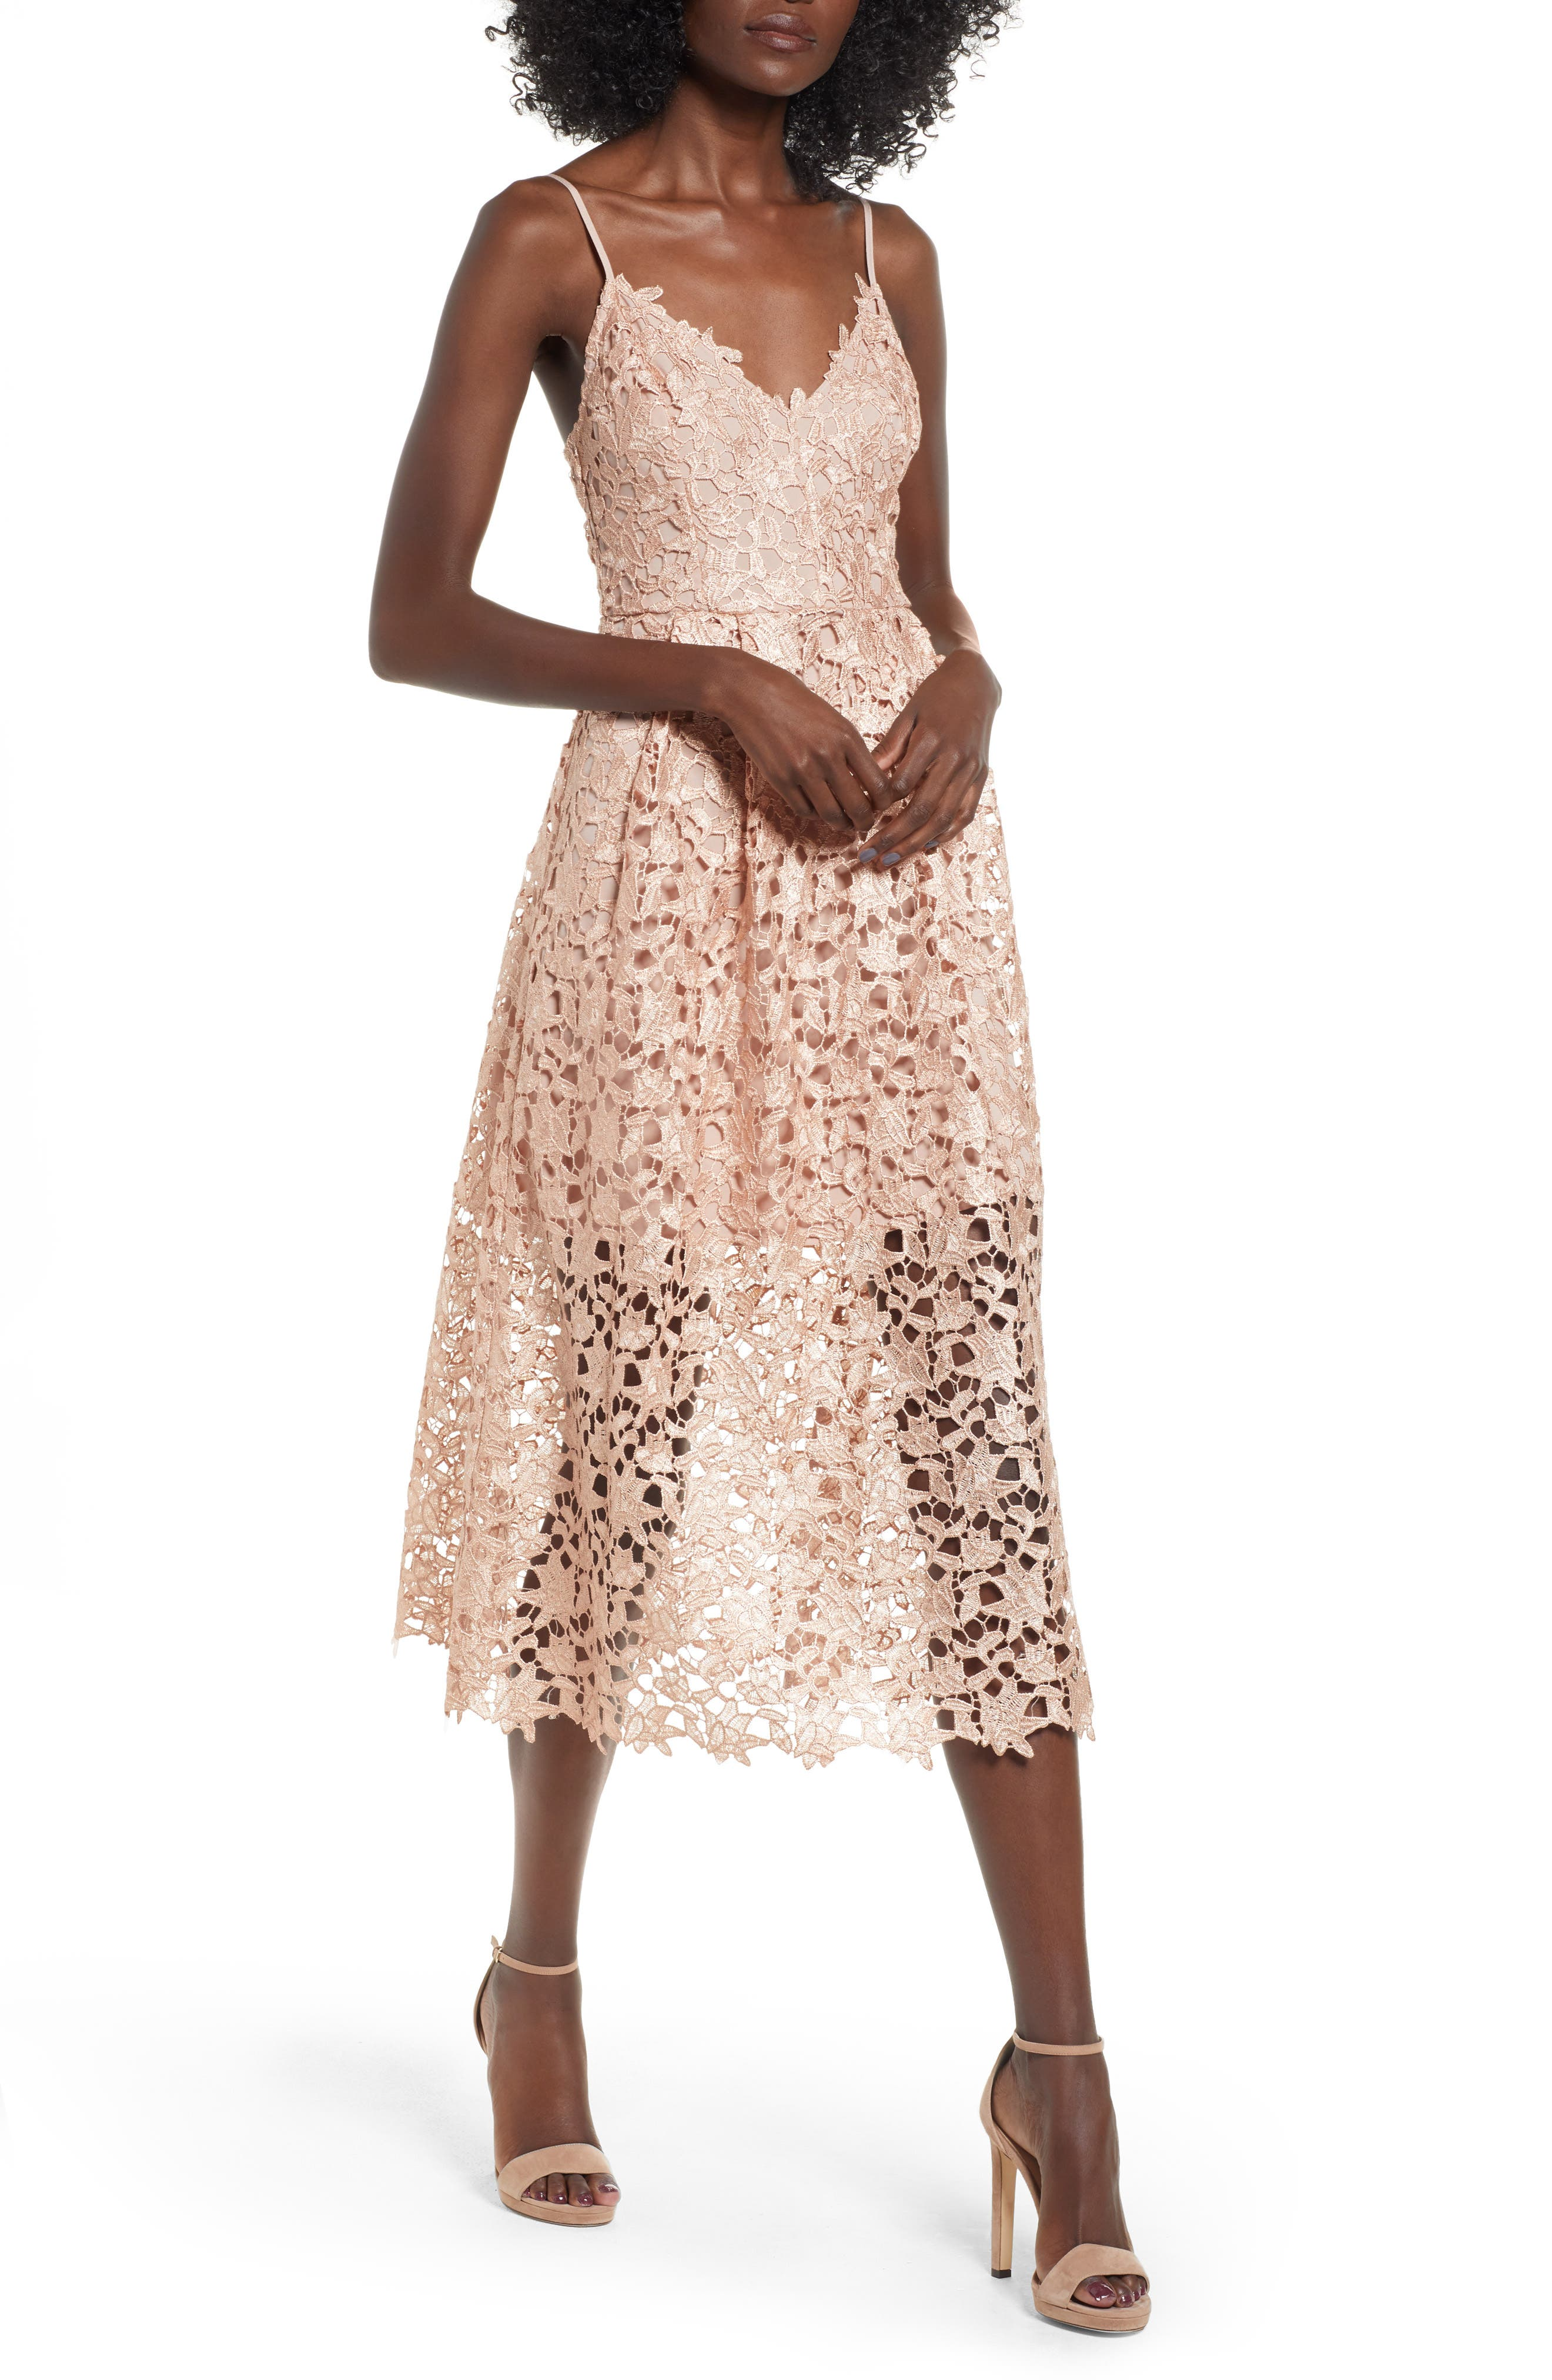 Lace Wedding Guest Dresses for Reception